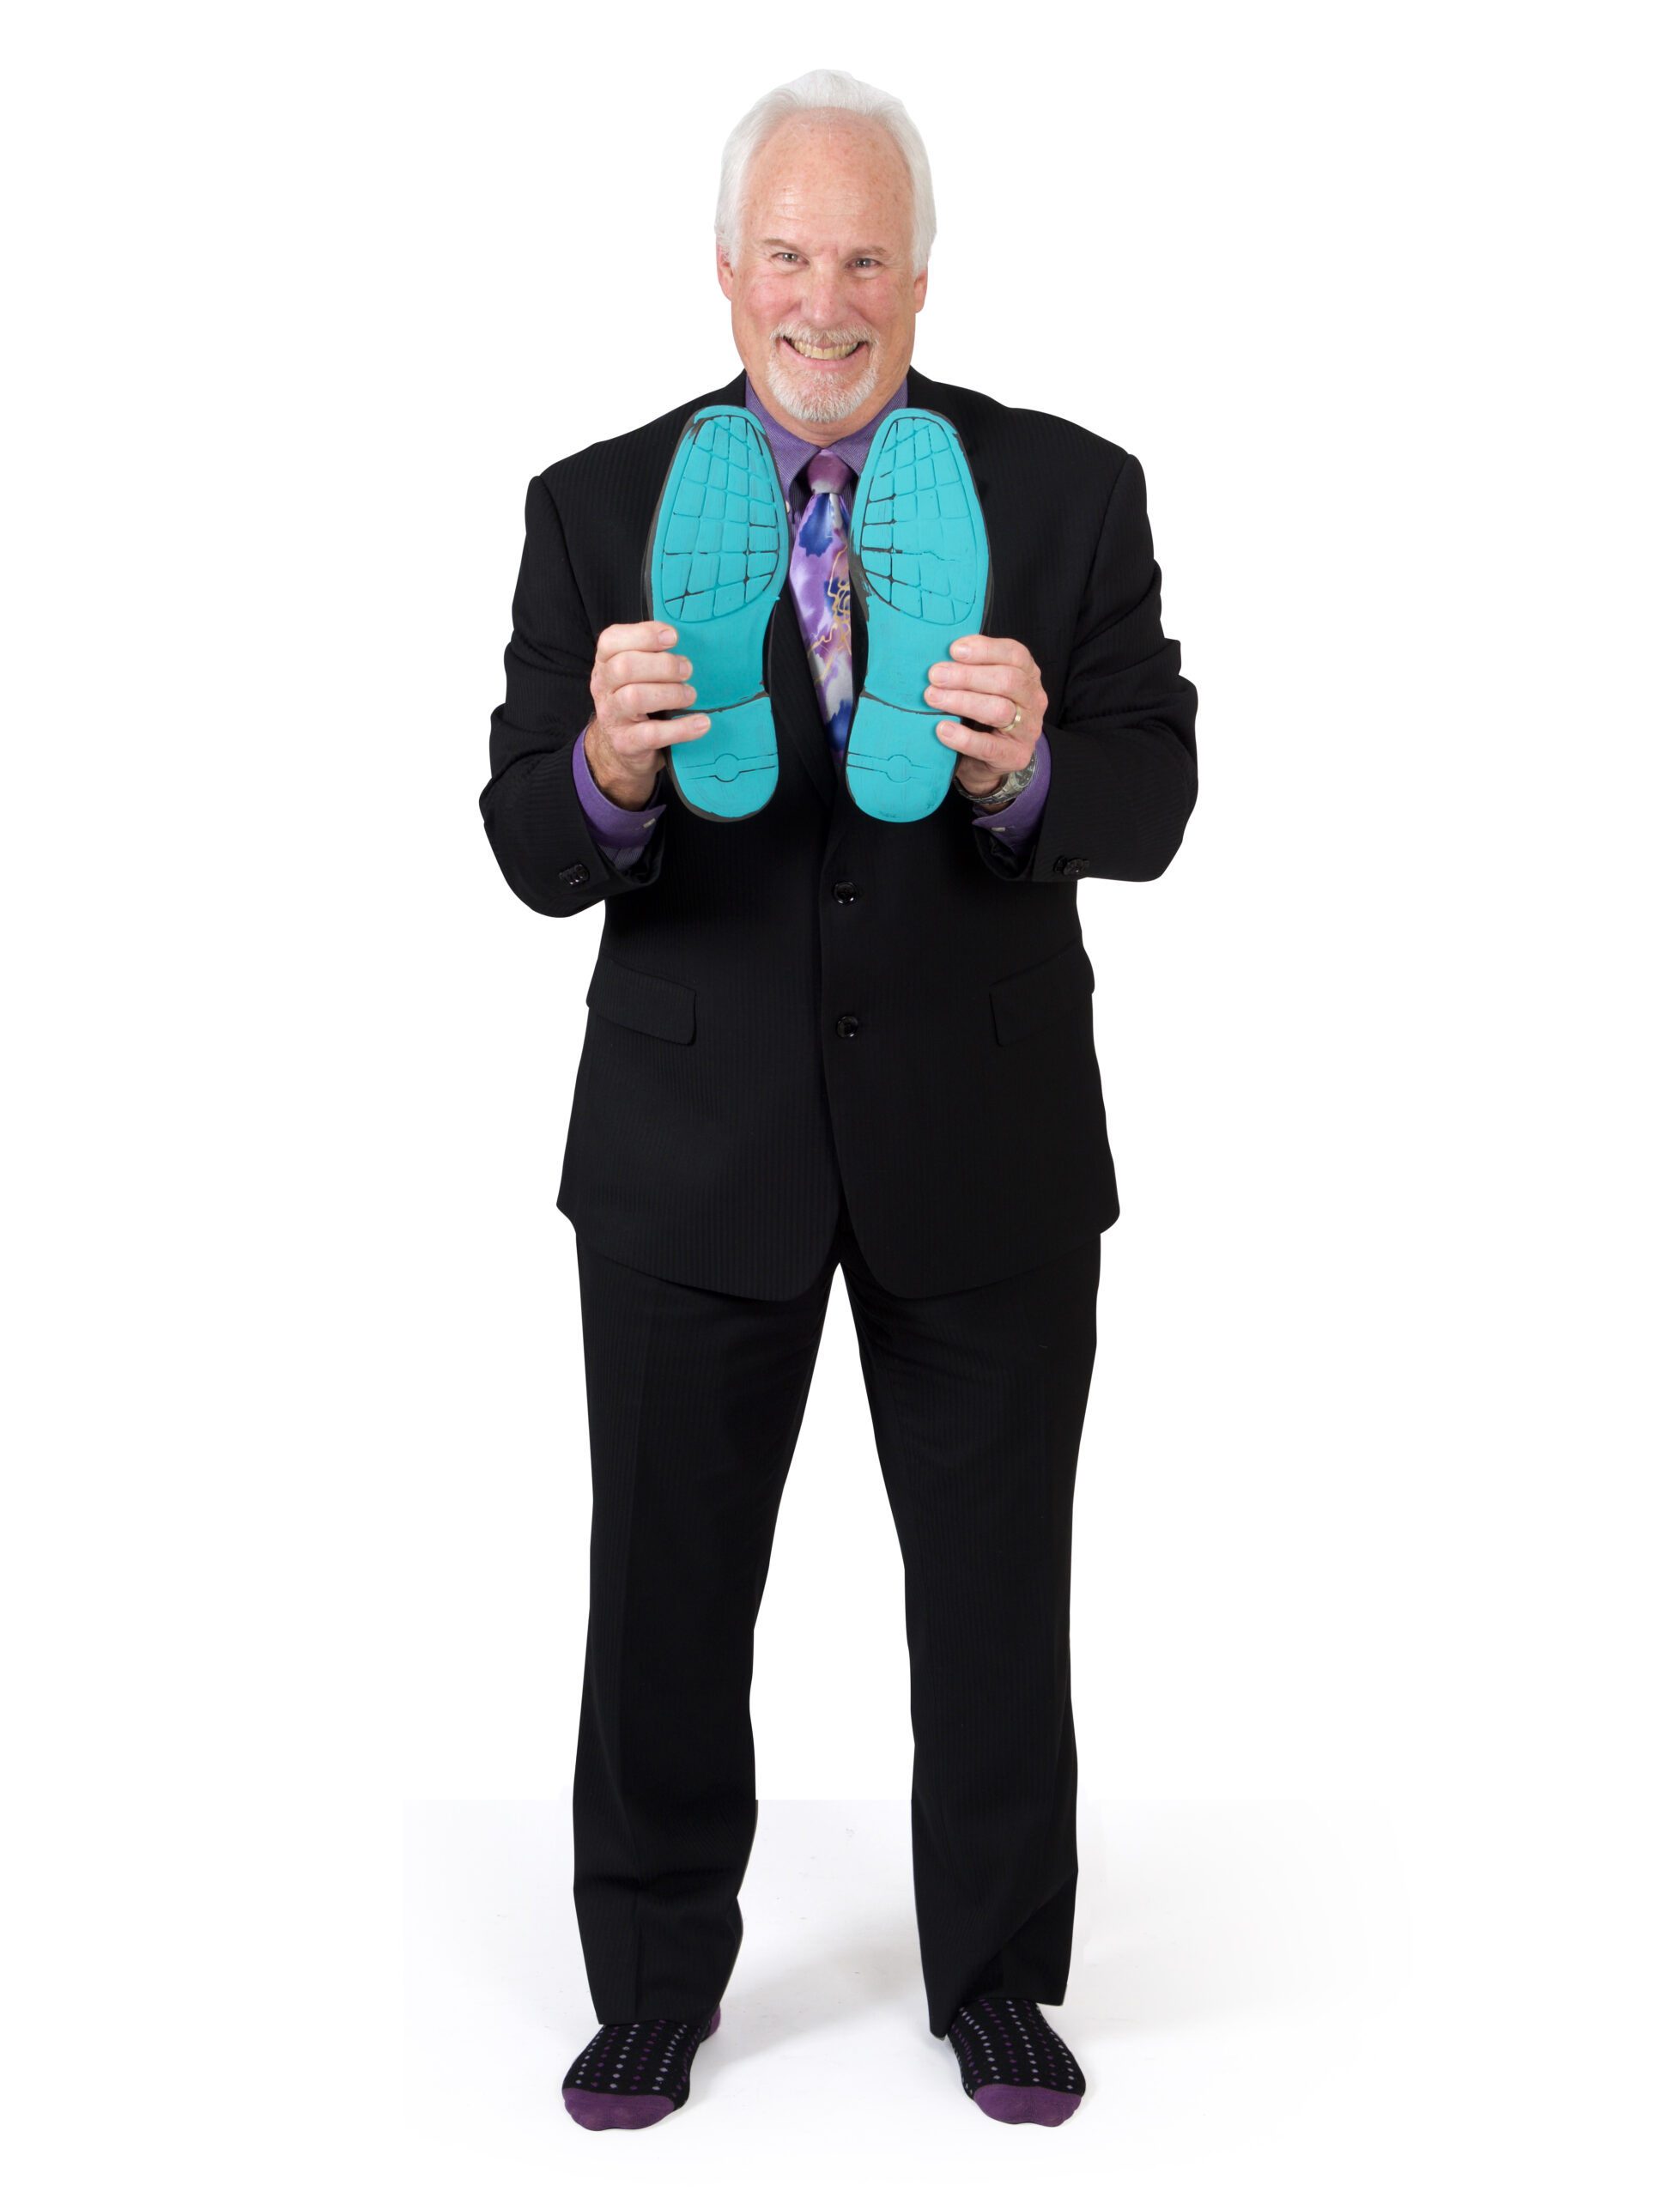 Gerry Cooper showing his sole